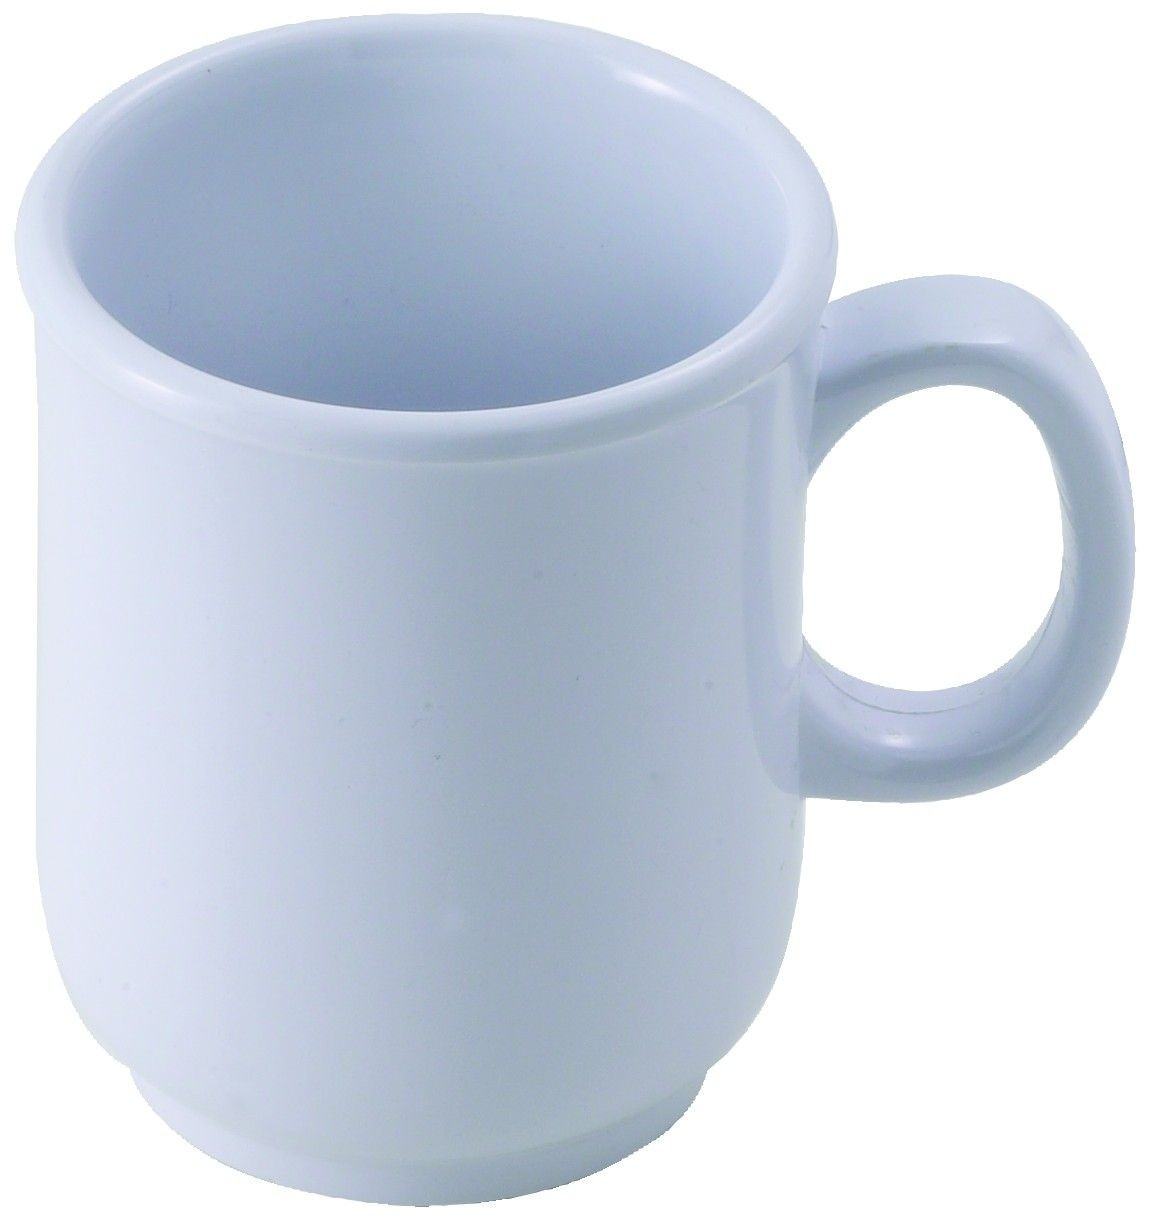 8 Oz Bulbous Mug, White